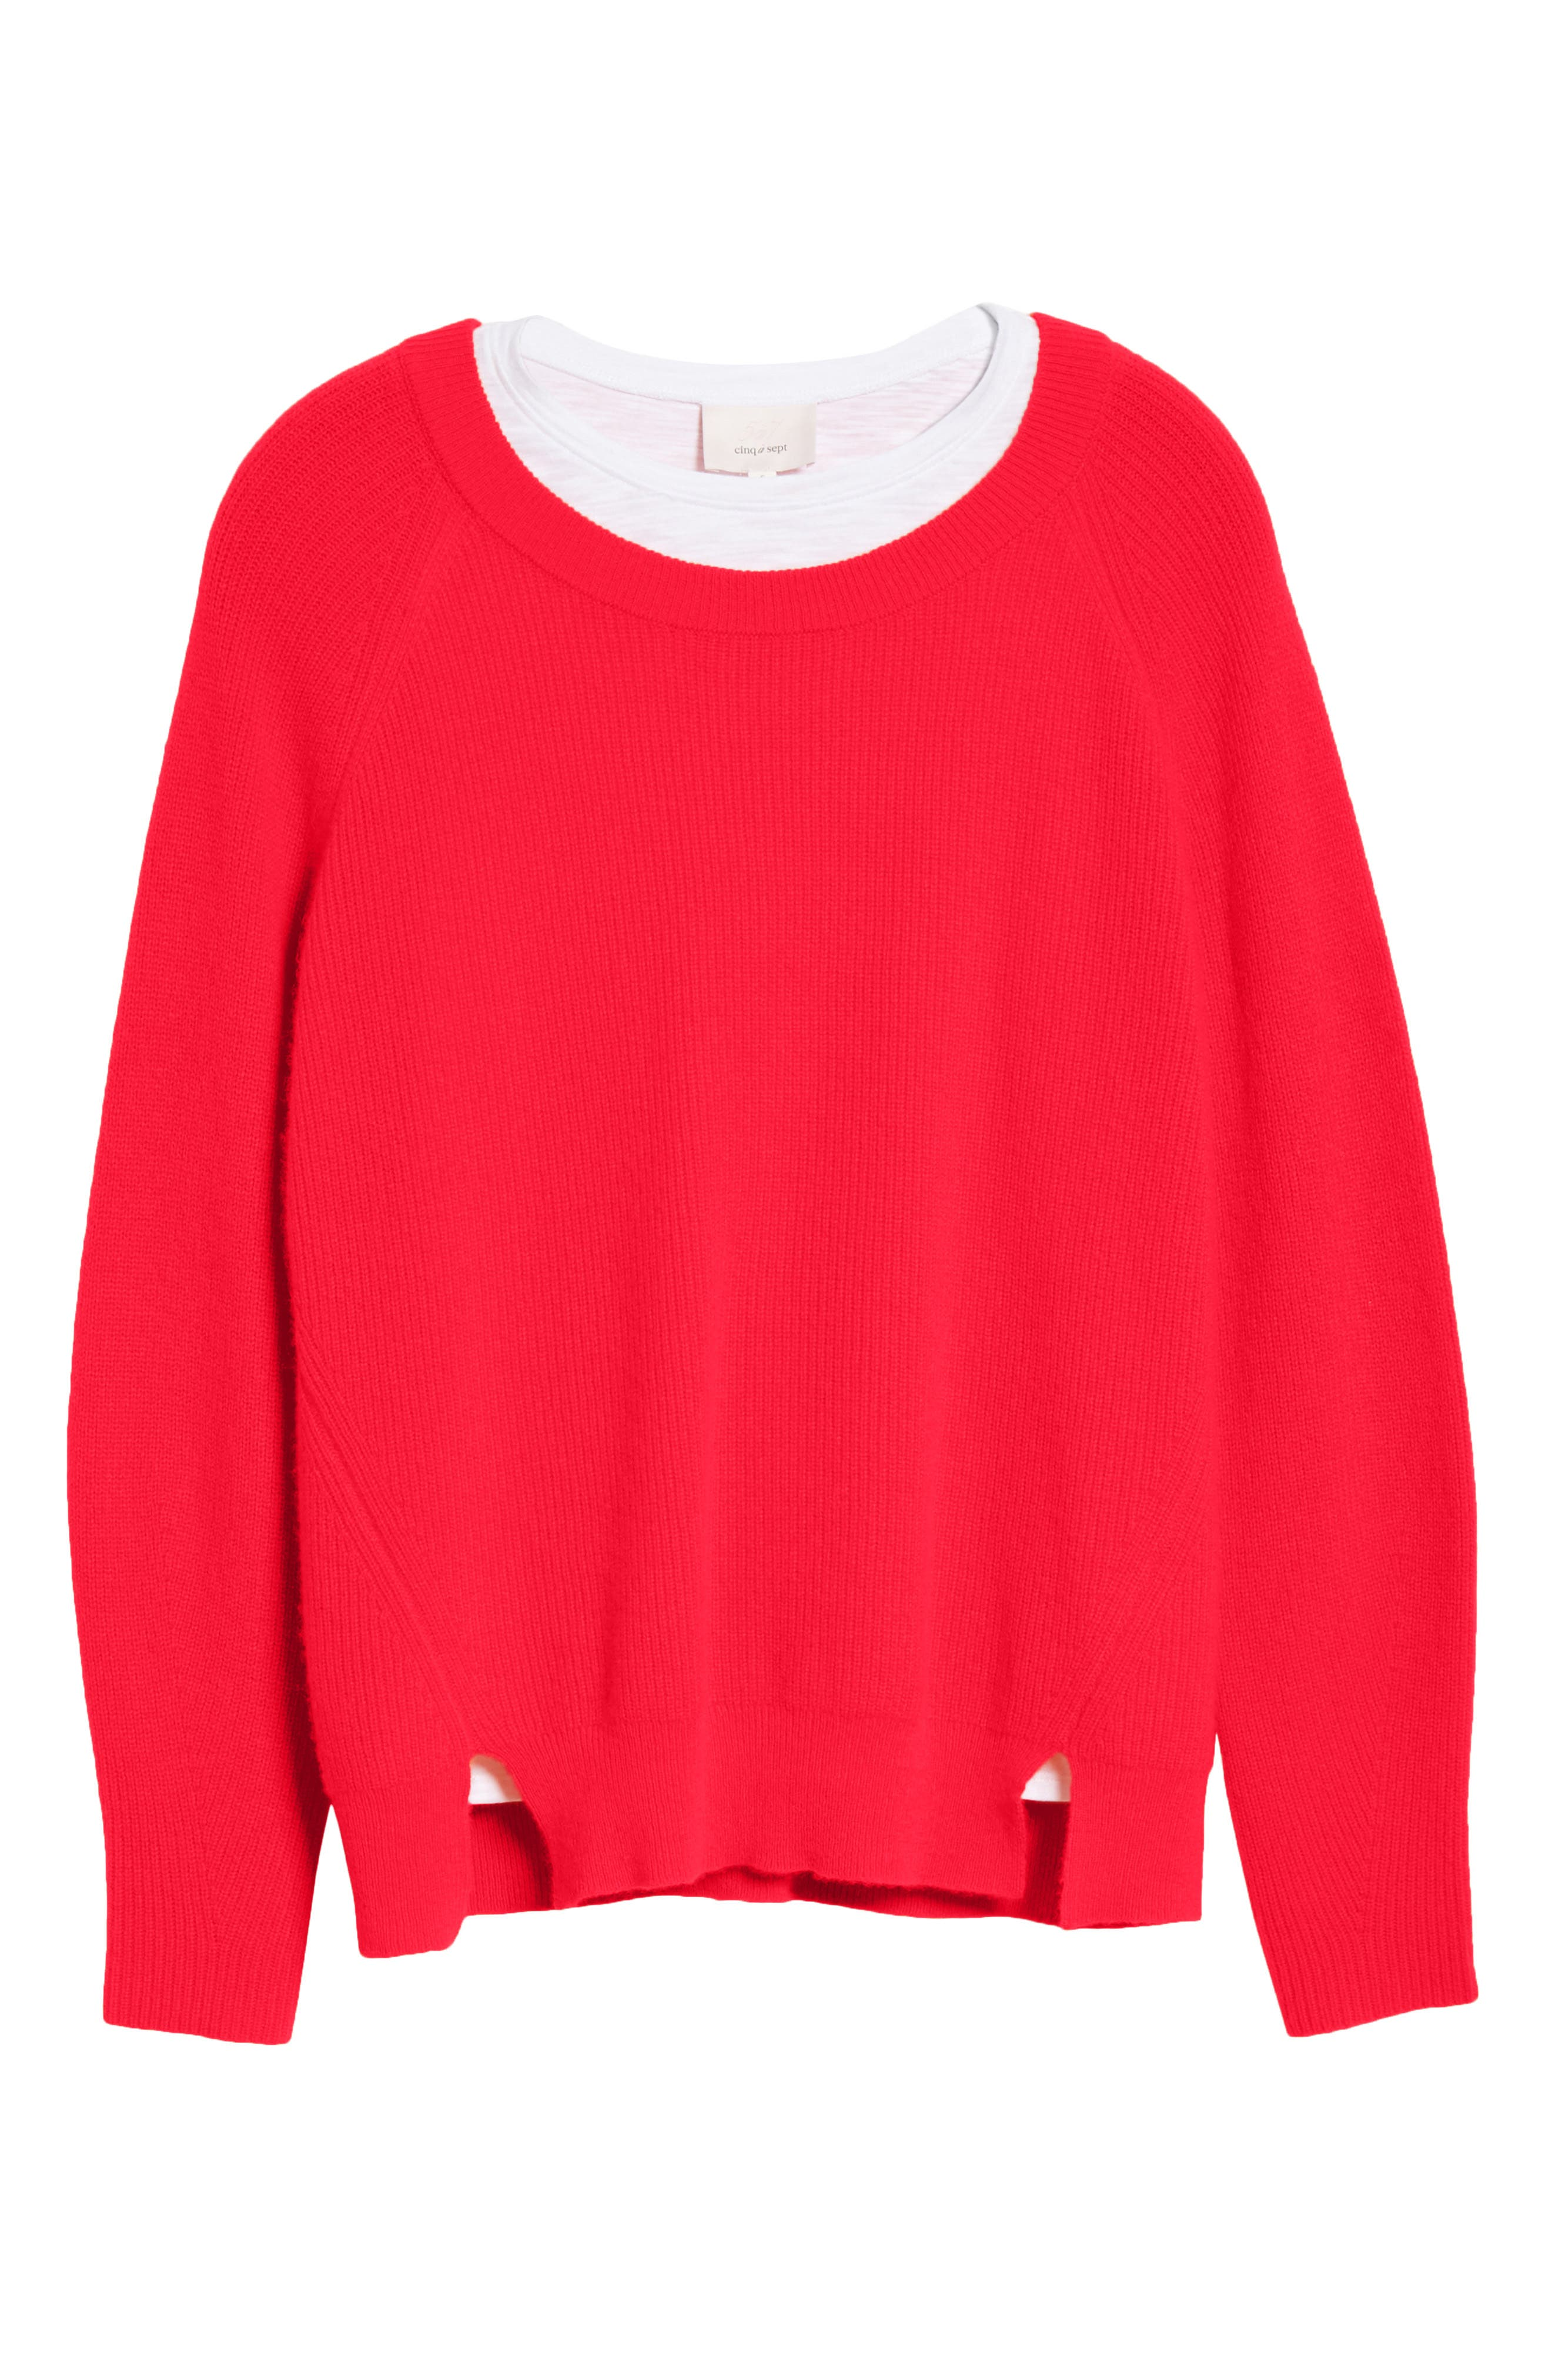 Lillie Layered Cashmere Sweater,                             Alternate thumbnail 6, color,                             POPPY PINK